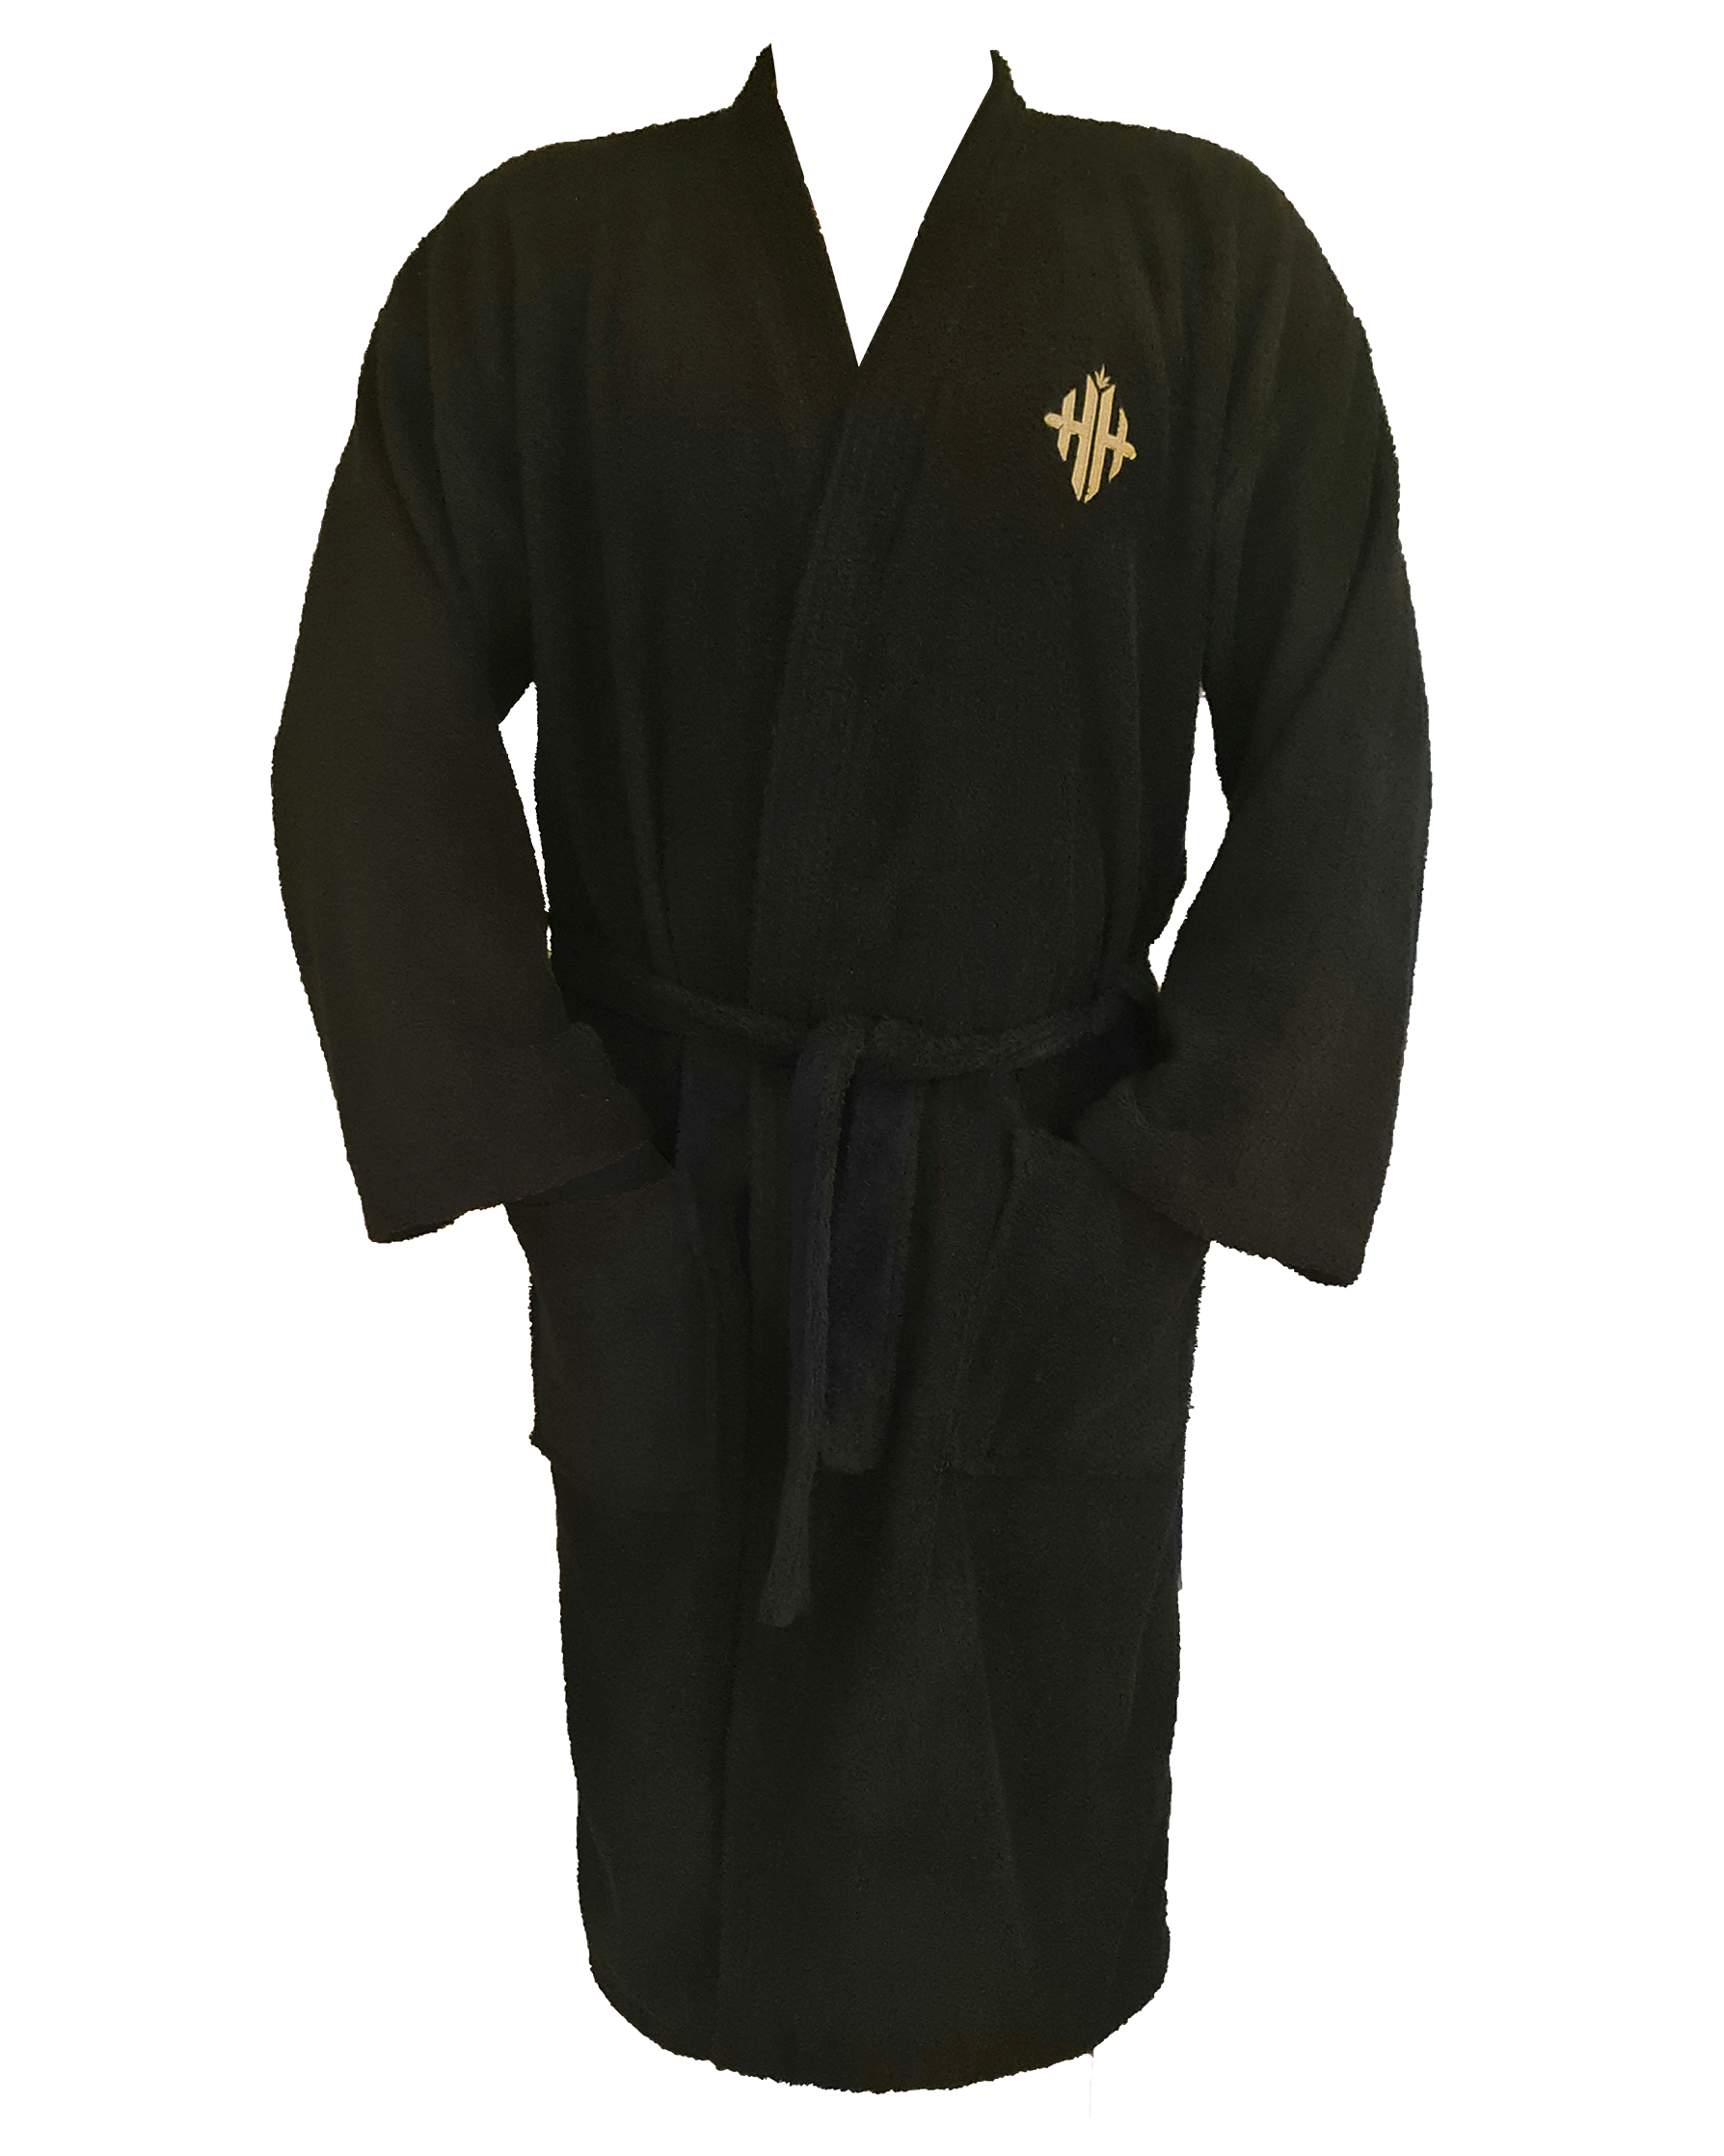 Monogram 'High Hefner' Unisex Bath Robe - Black/Metallic Gold